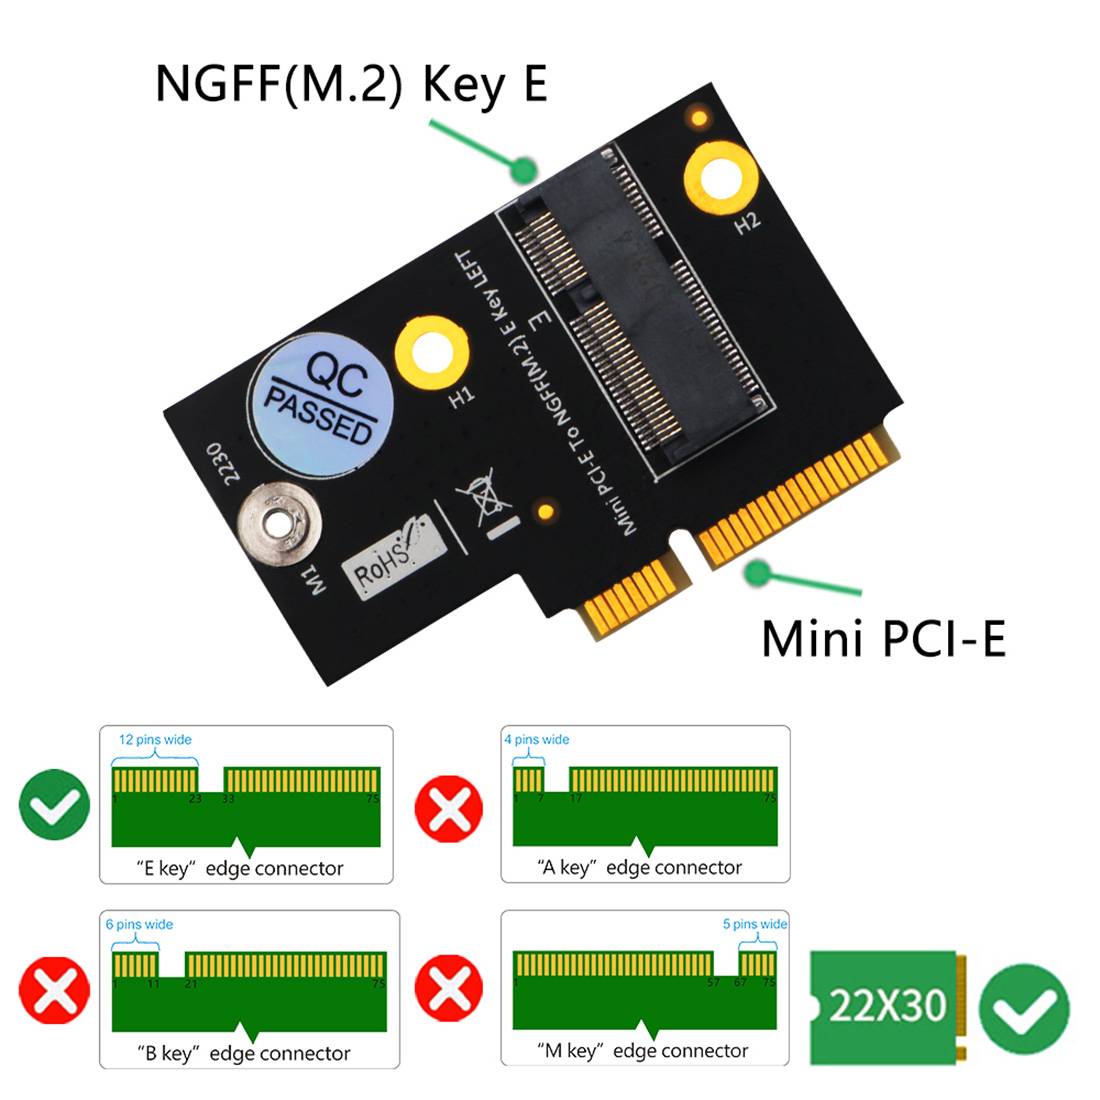 M.2 Adapter For Ngff Key E To Half-size Mini Pci-e Expansion Card For Wifi6 Ax200, 9260, 8265 ,8260 ,7265 Card And Y510p Model Colours Are Striking